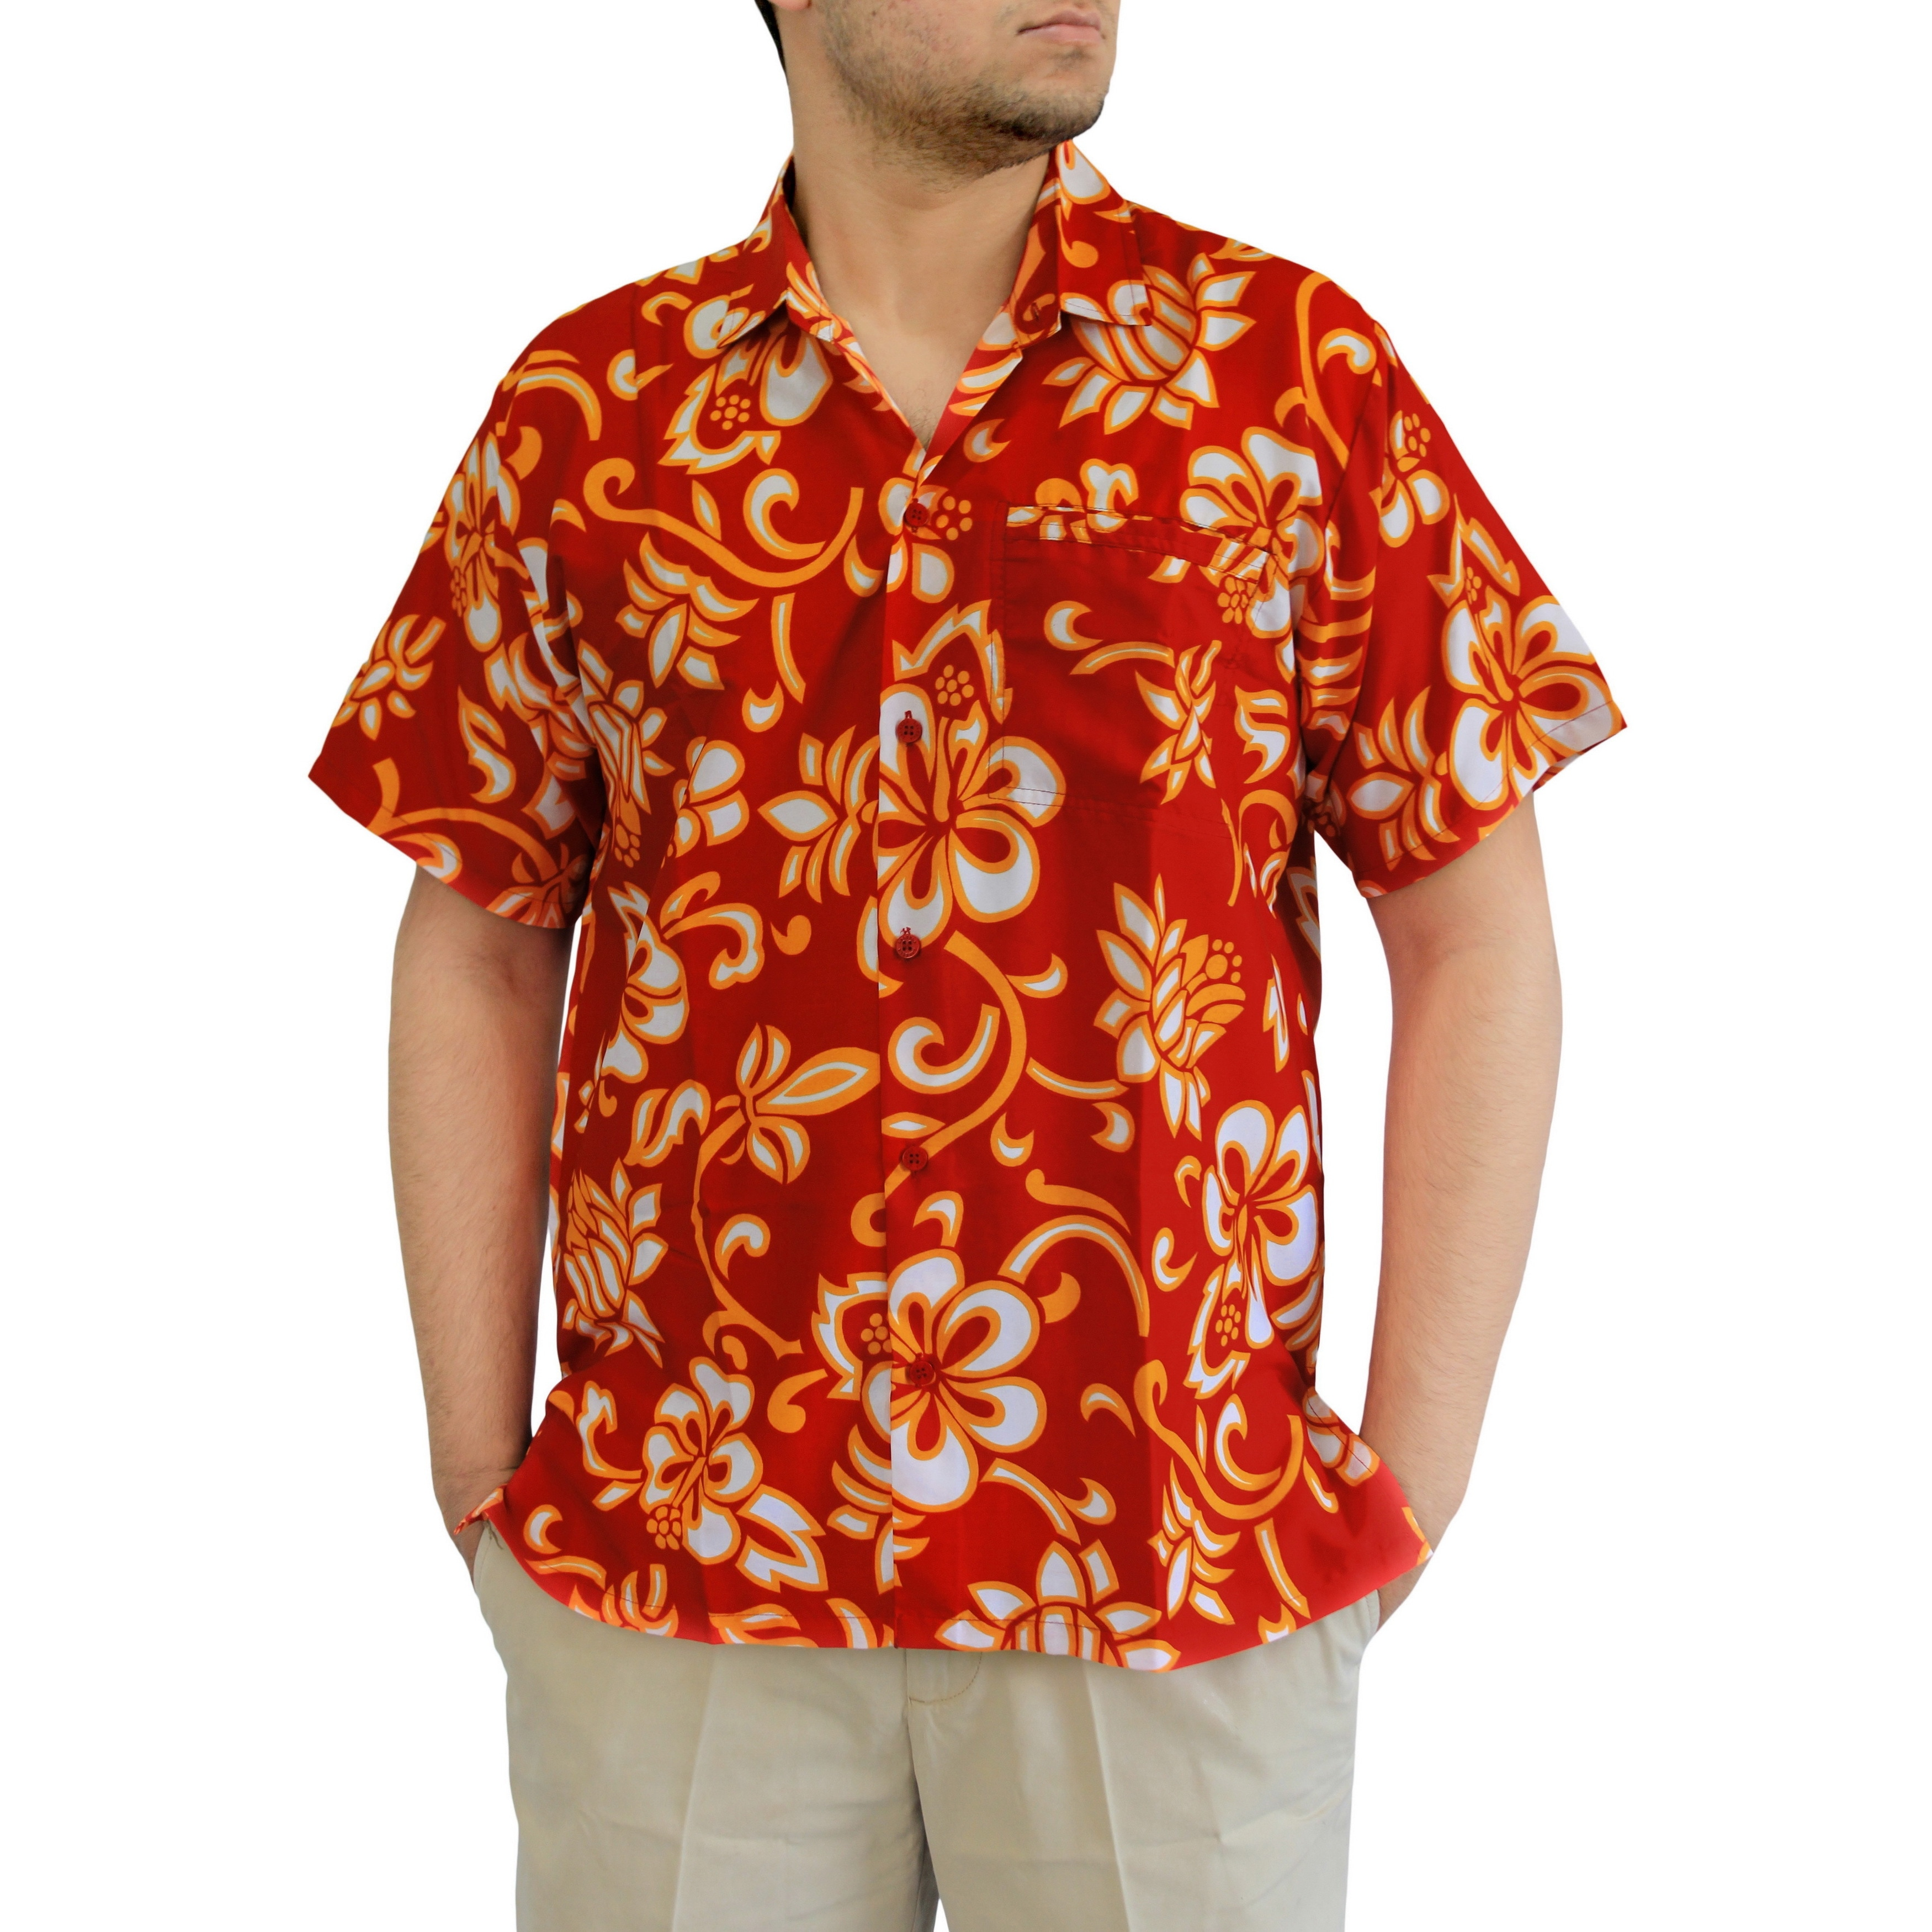 a7eed883199 Mens Red Silk Short Sleeve Shirt - BCD Tofu House